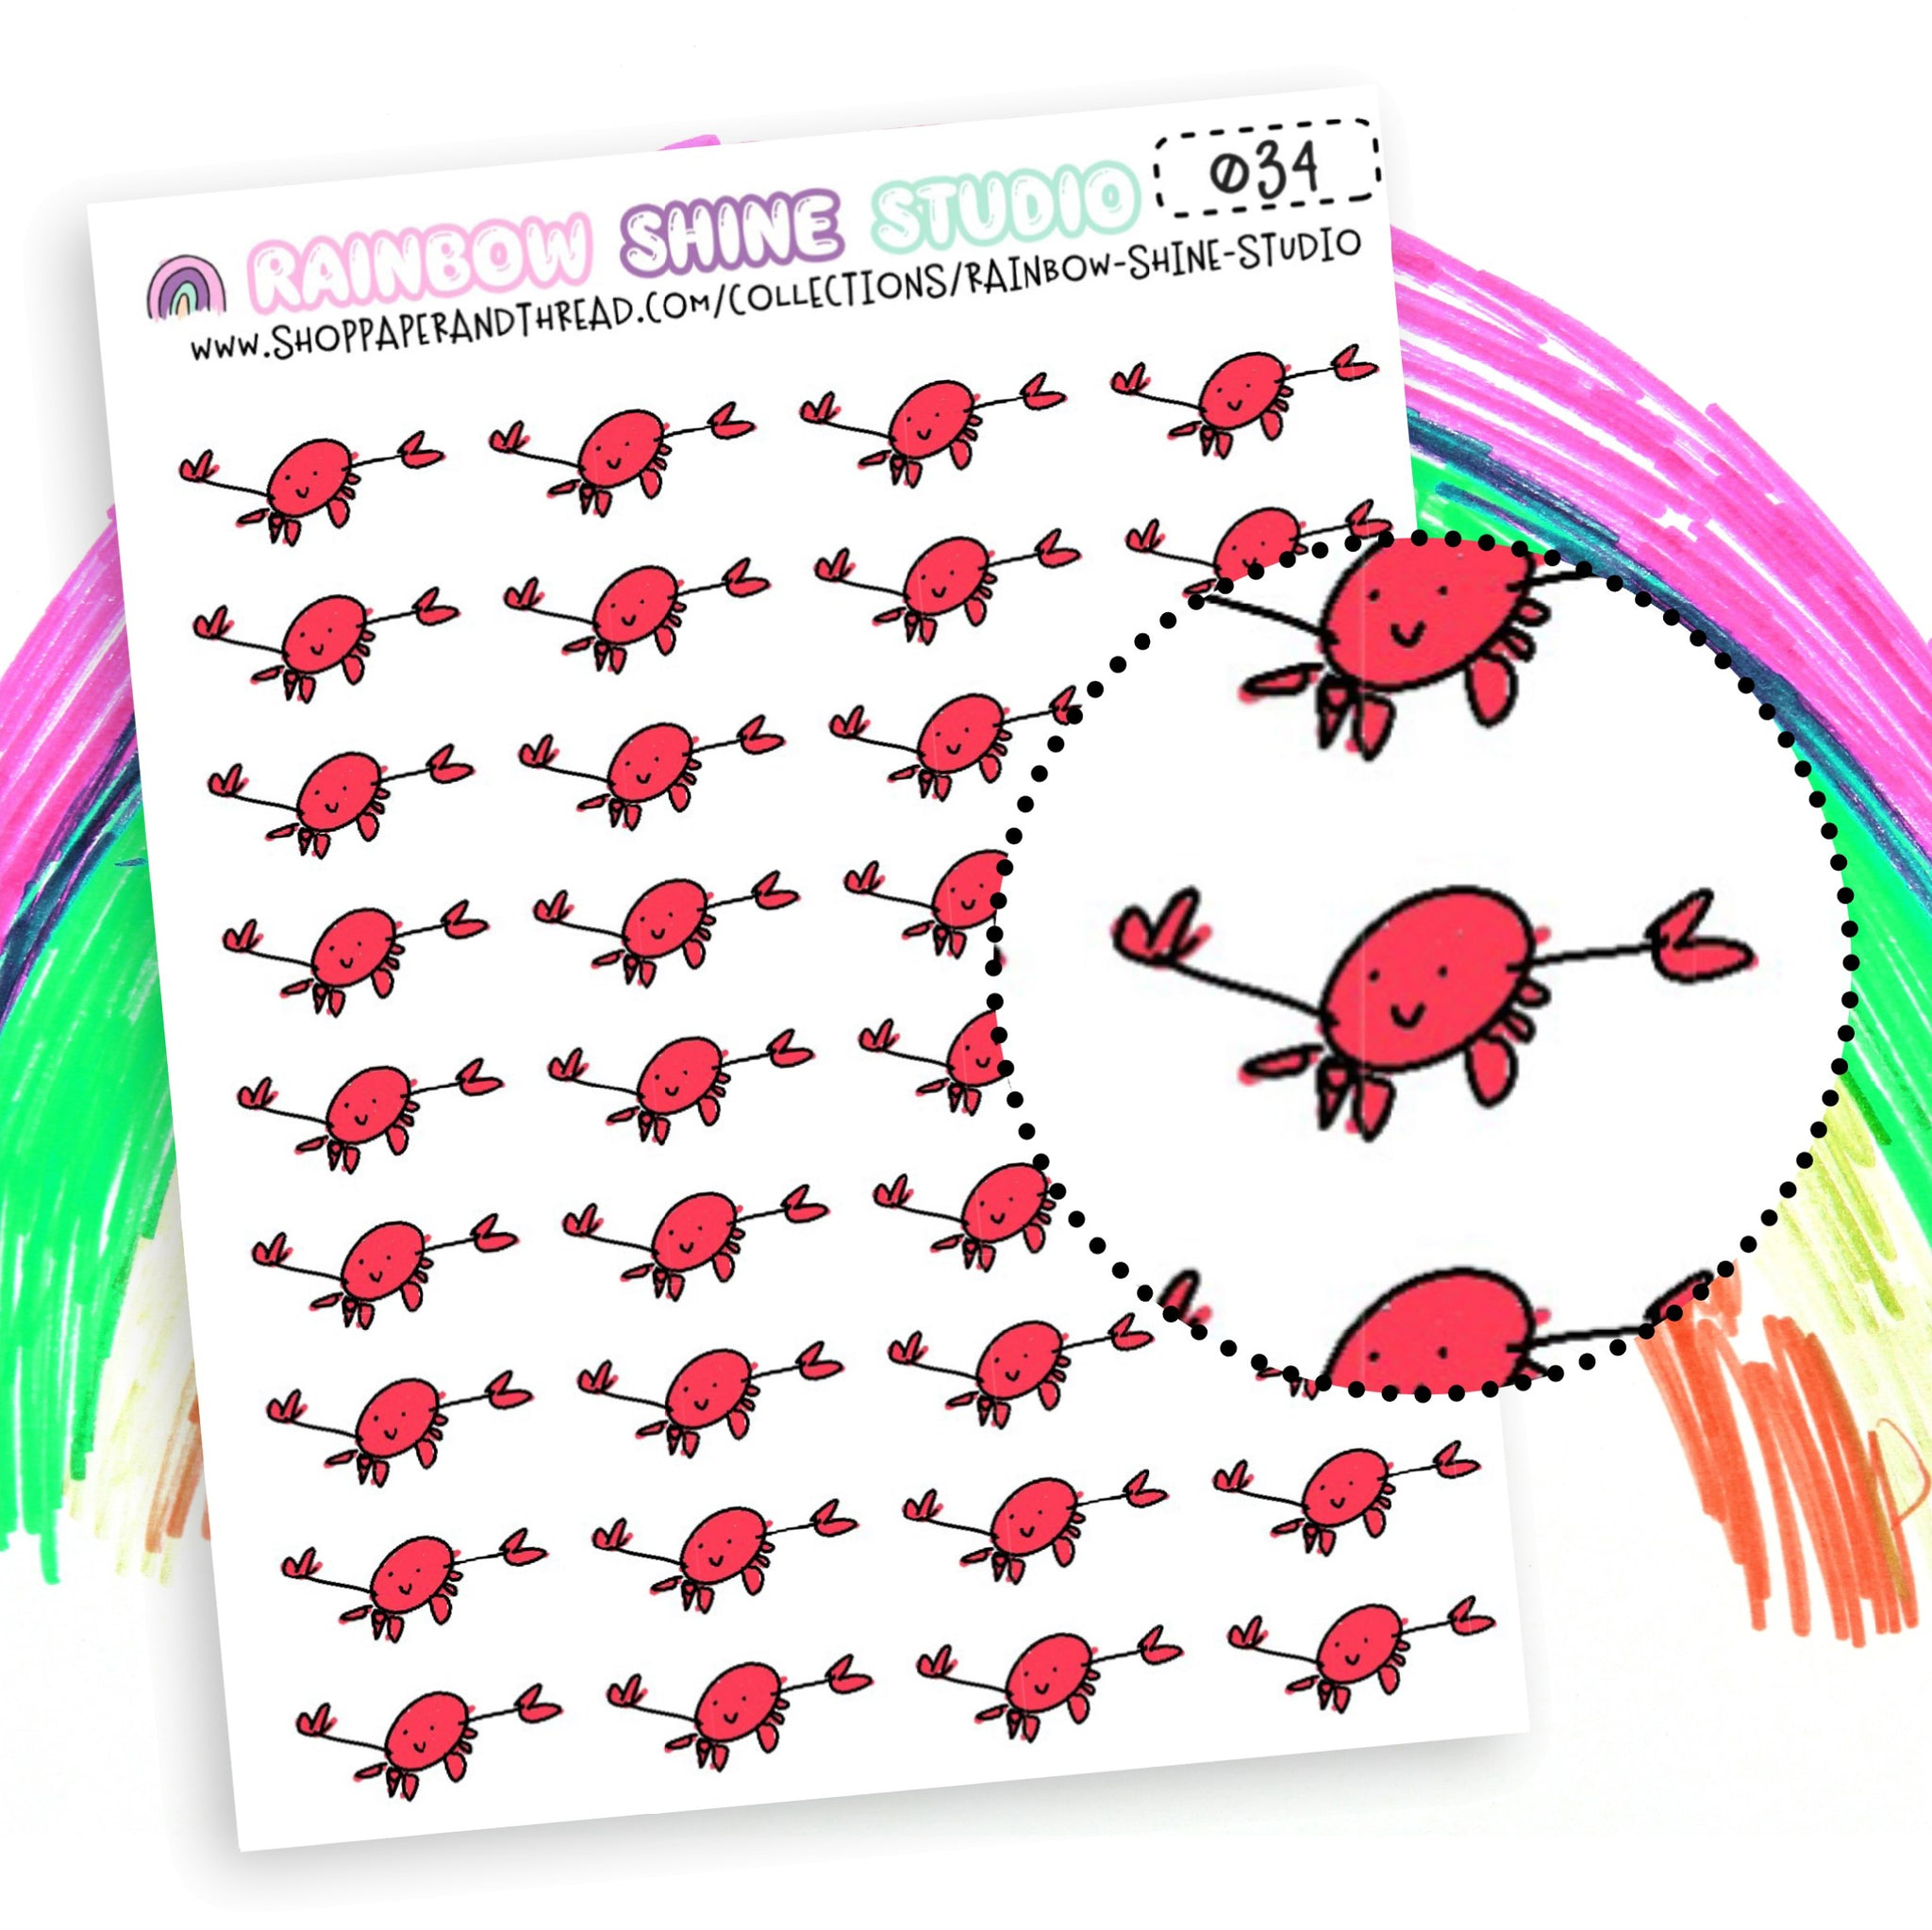 Crab Planner Stickers - Period Planner Stickers - Bad Day Planner Stickers - Rainbow Shine Studio - 034